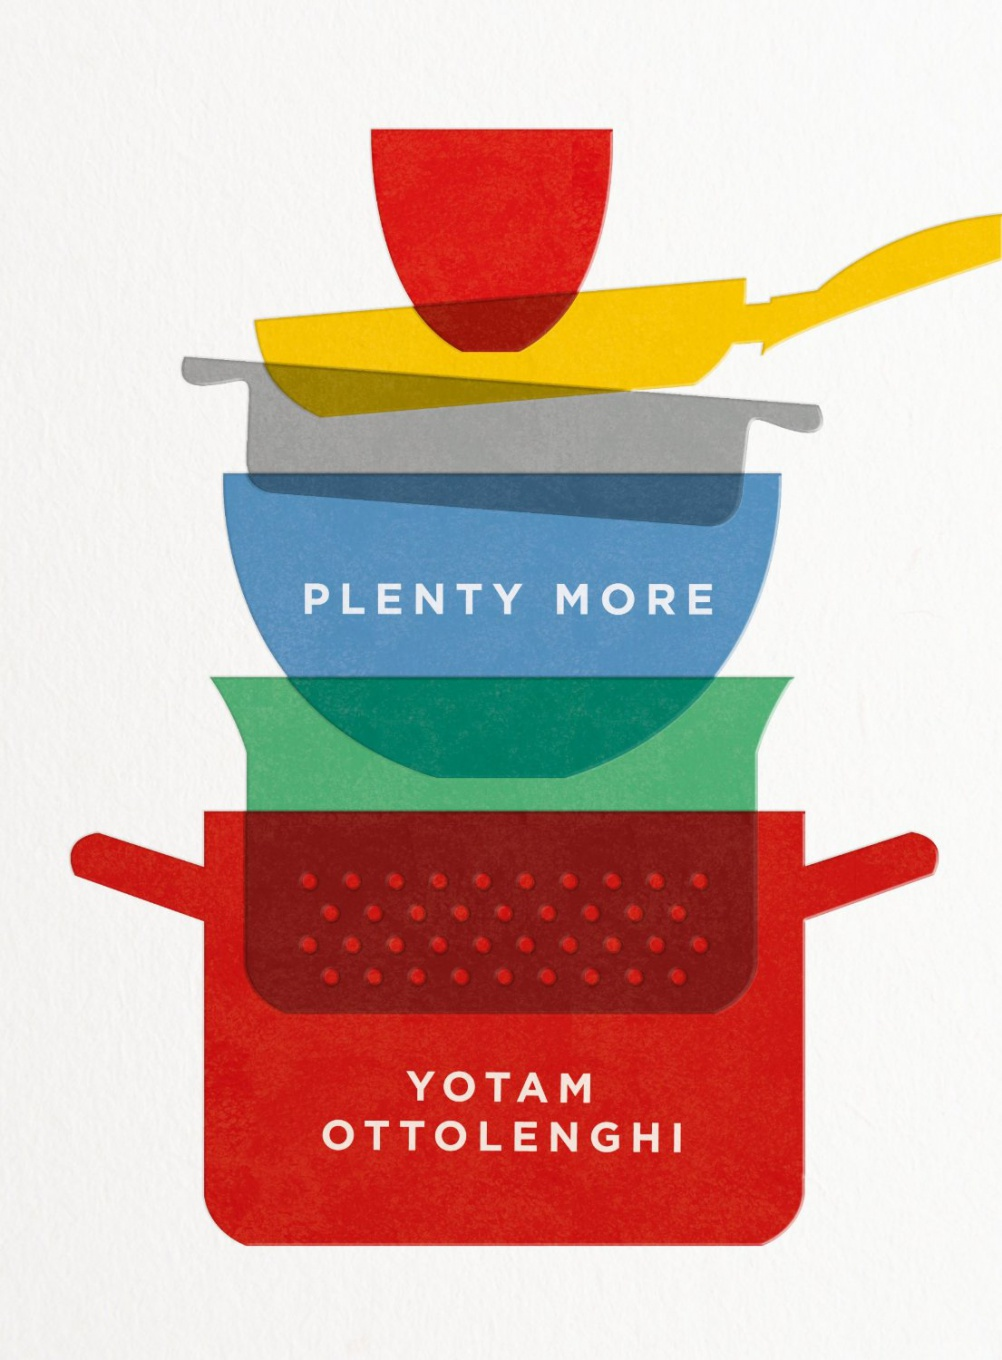 Plenty More book cover, by Here Design